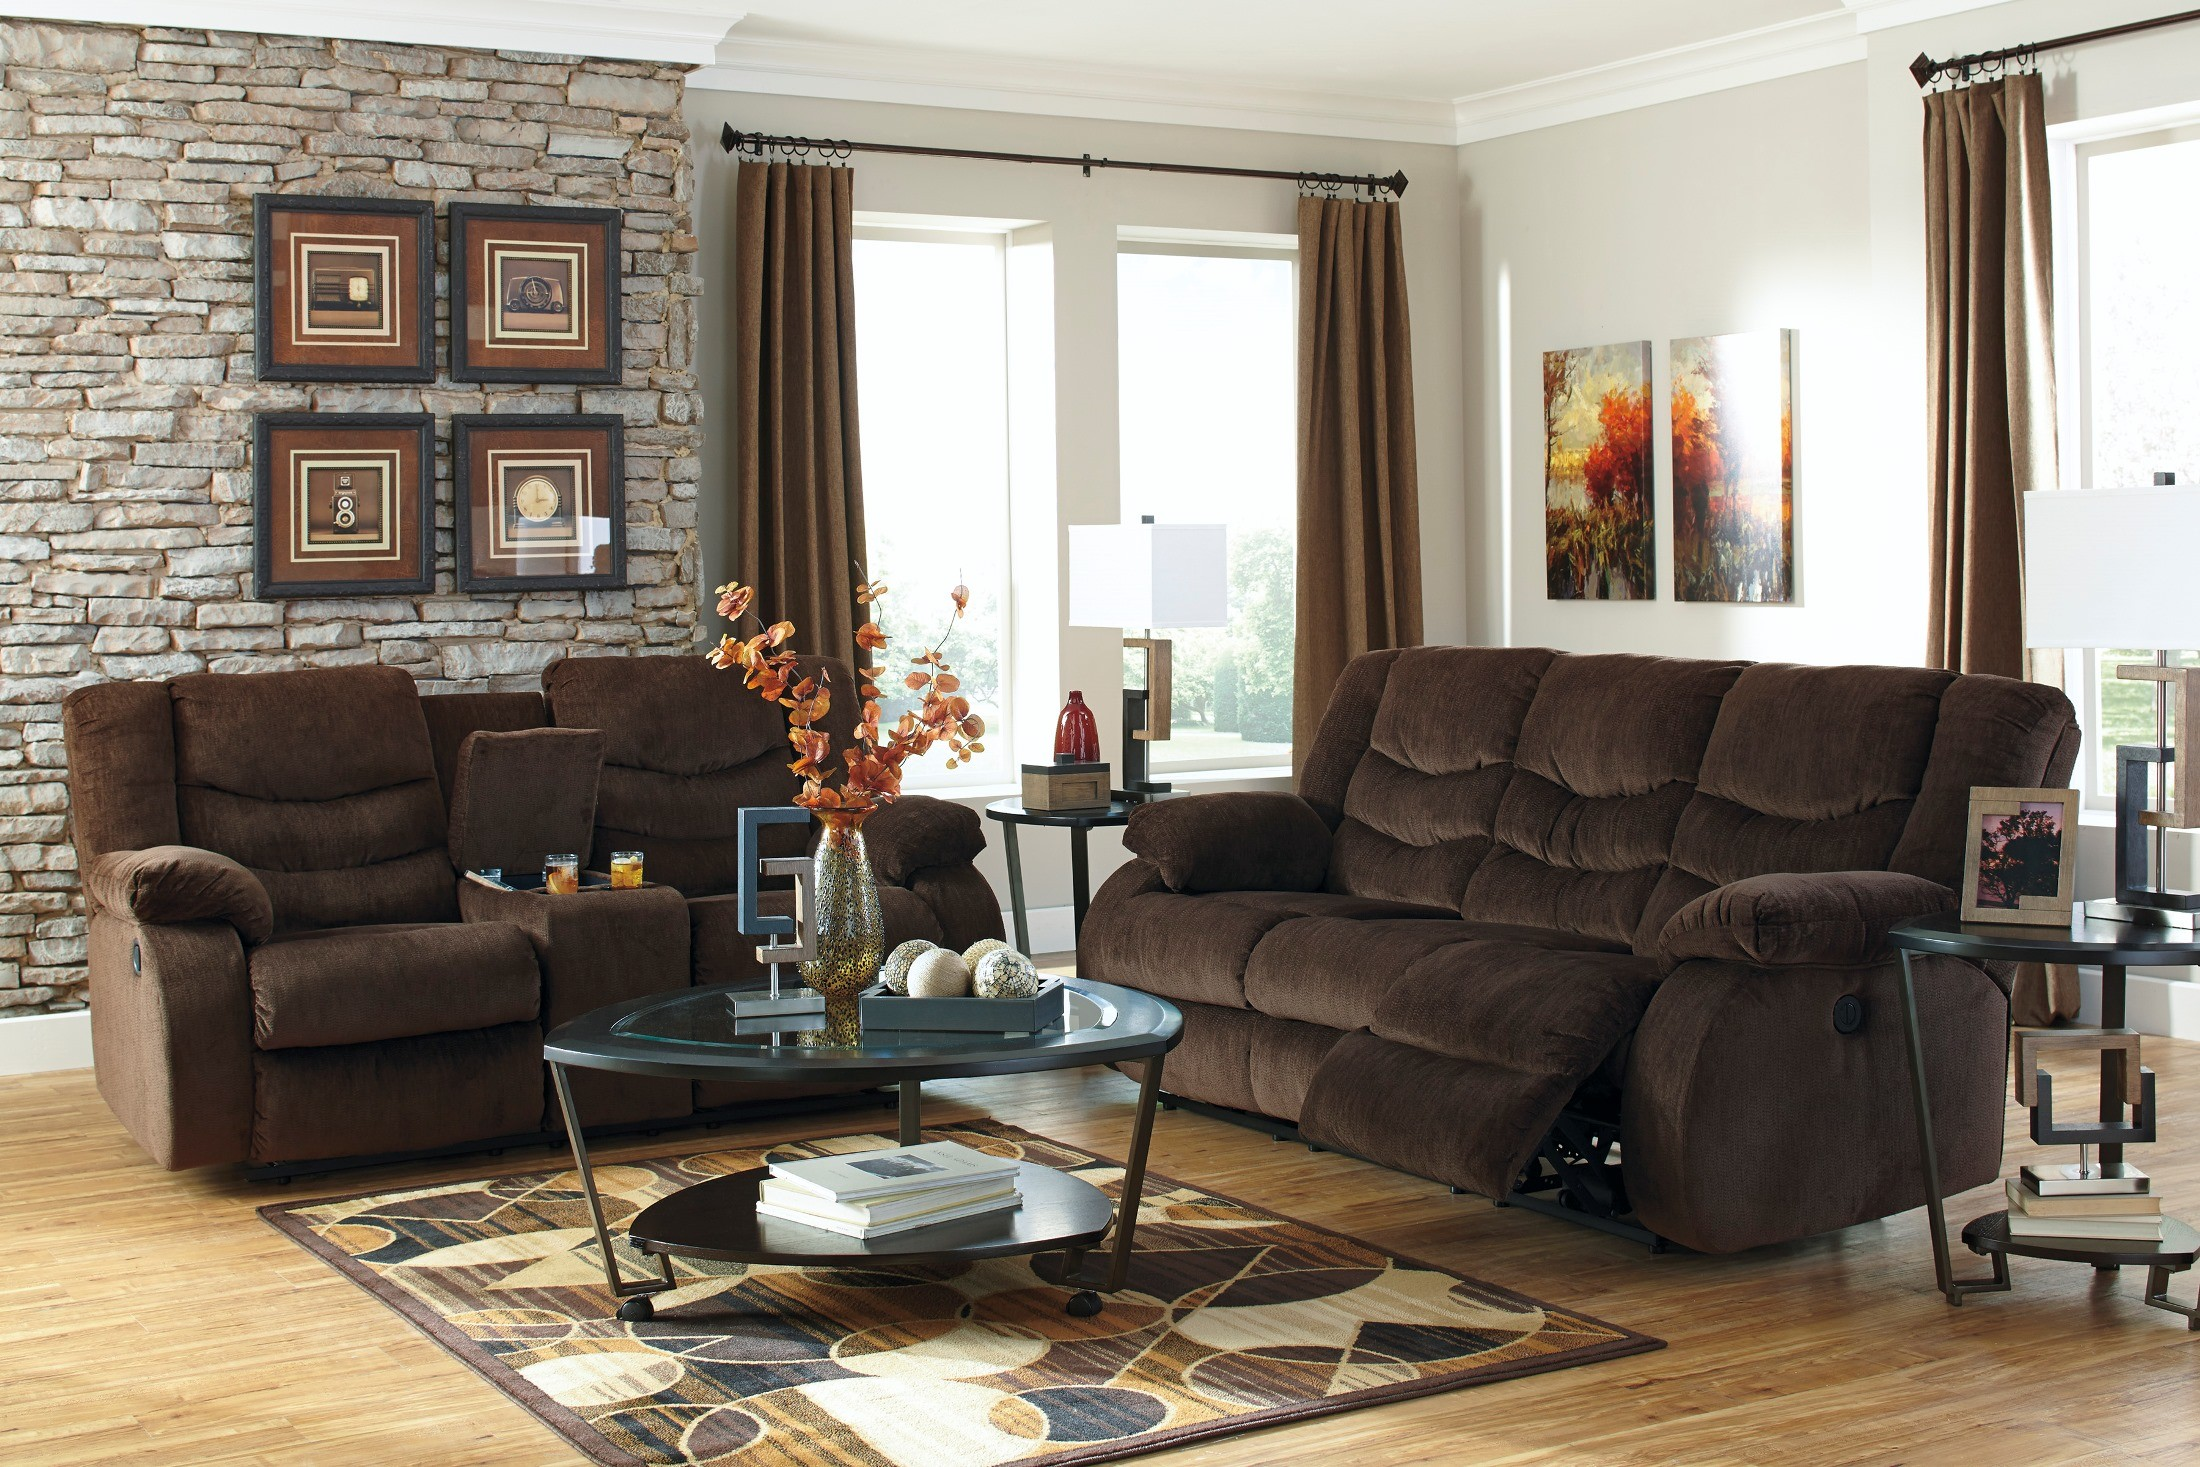 Garek cocoa reclining living room set from ashley 92003 for Living room 94 answers